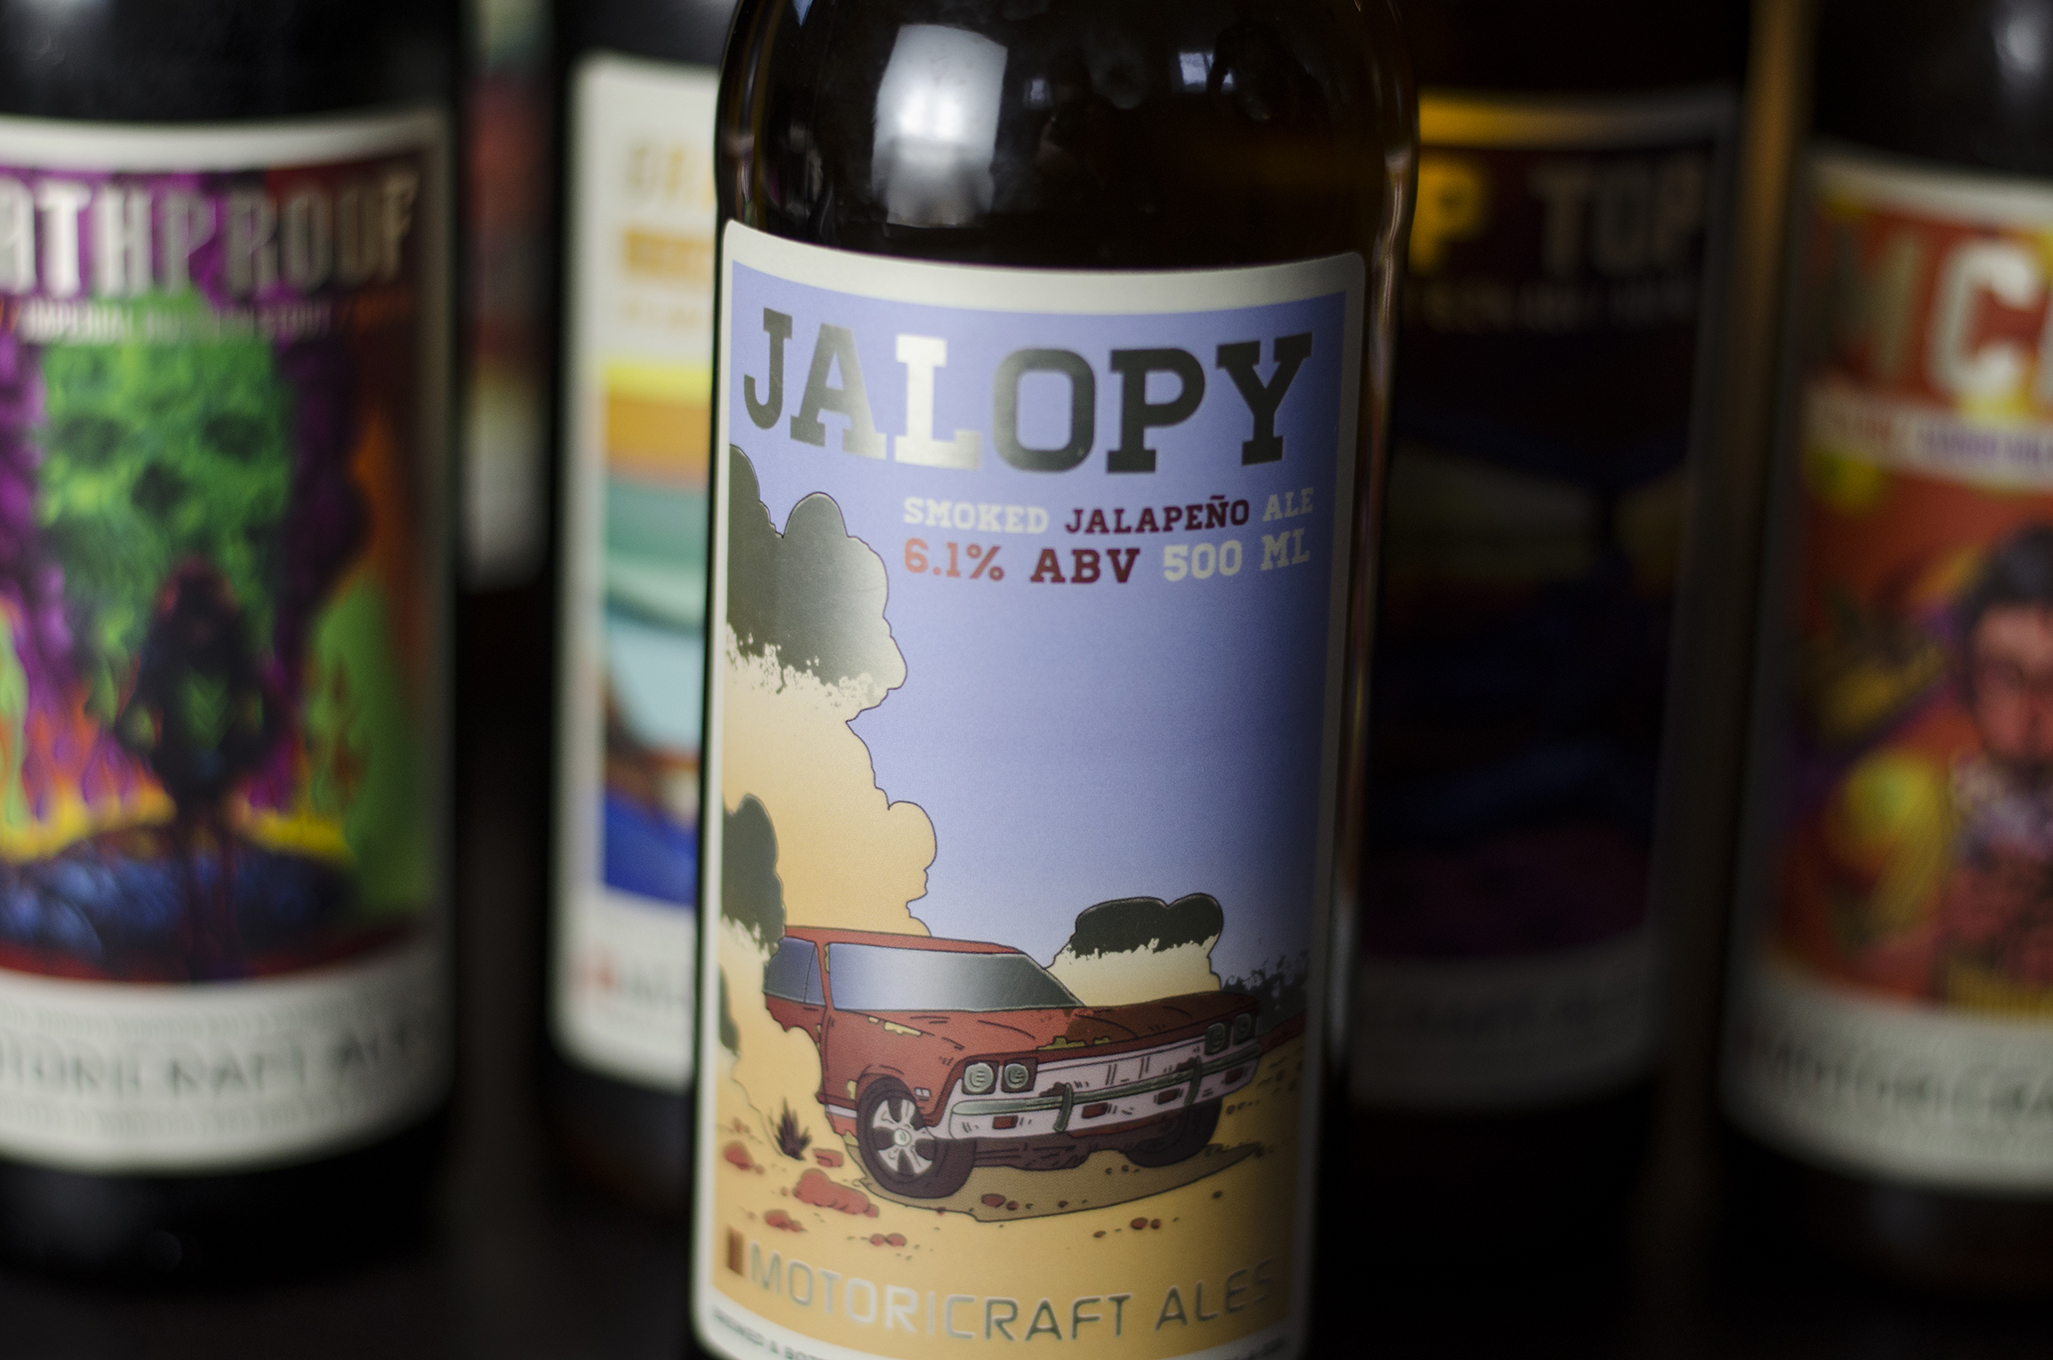 Jalopy from Motor Craft Ales in Windsor, Ontario.